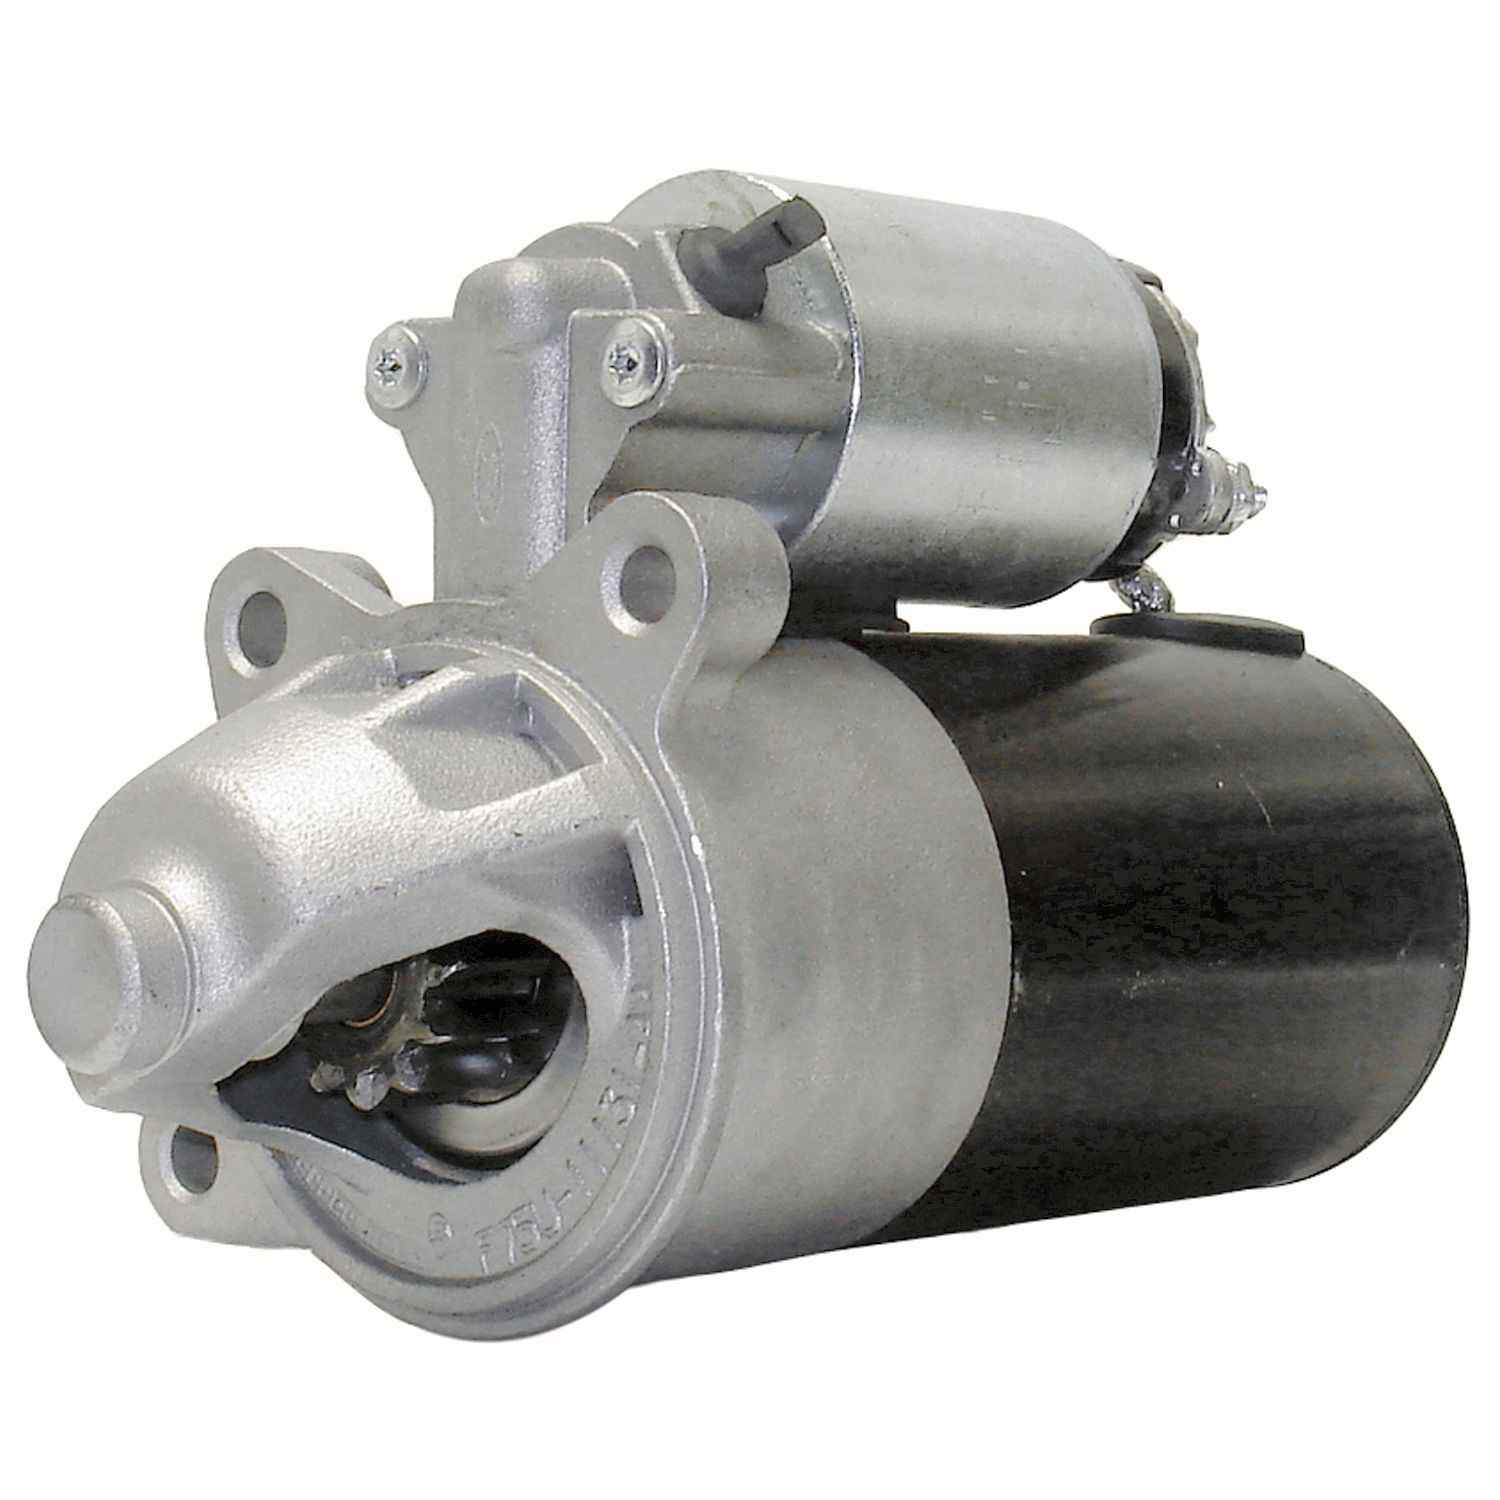 ACDELCO GOLD/PROFESSIONAL - Reman Starter Motor - DCC 336-1808A